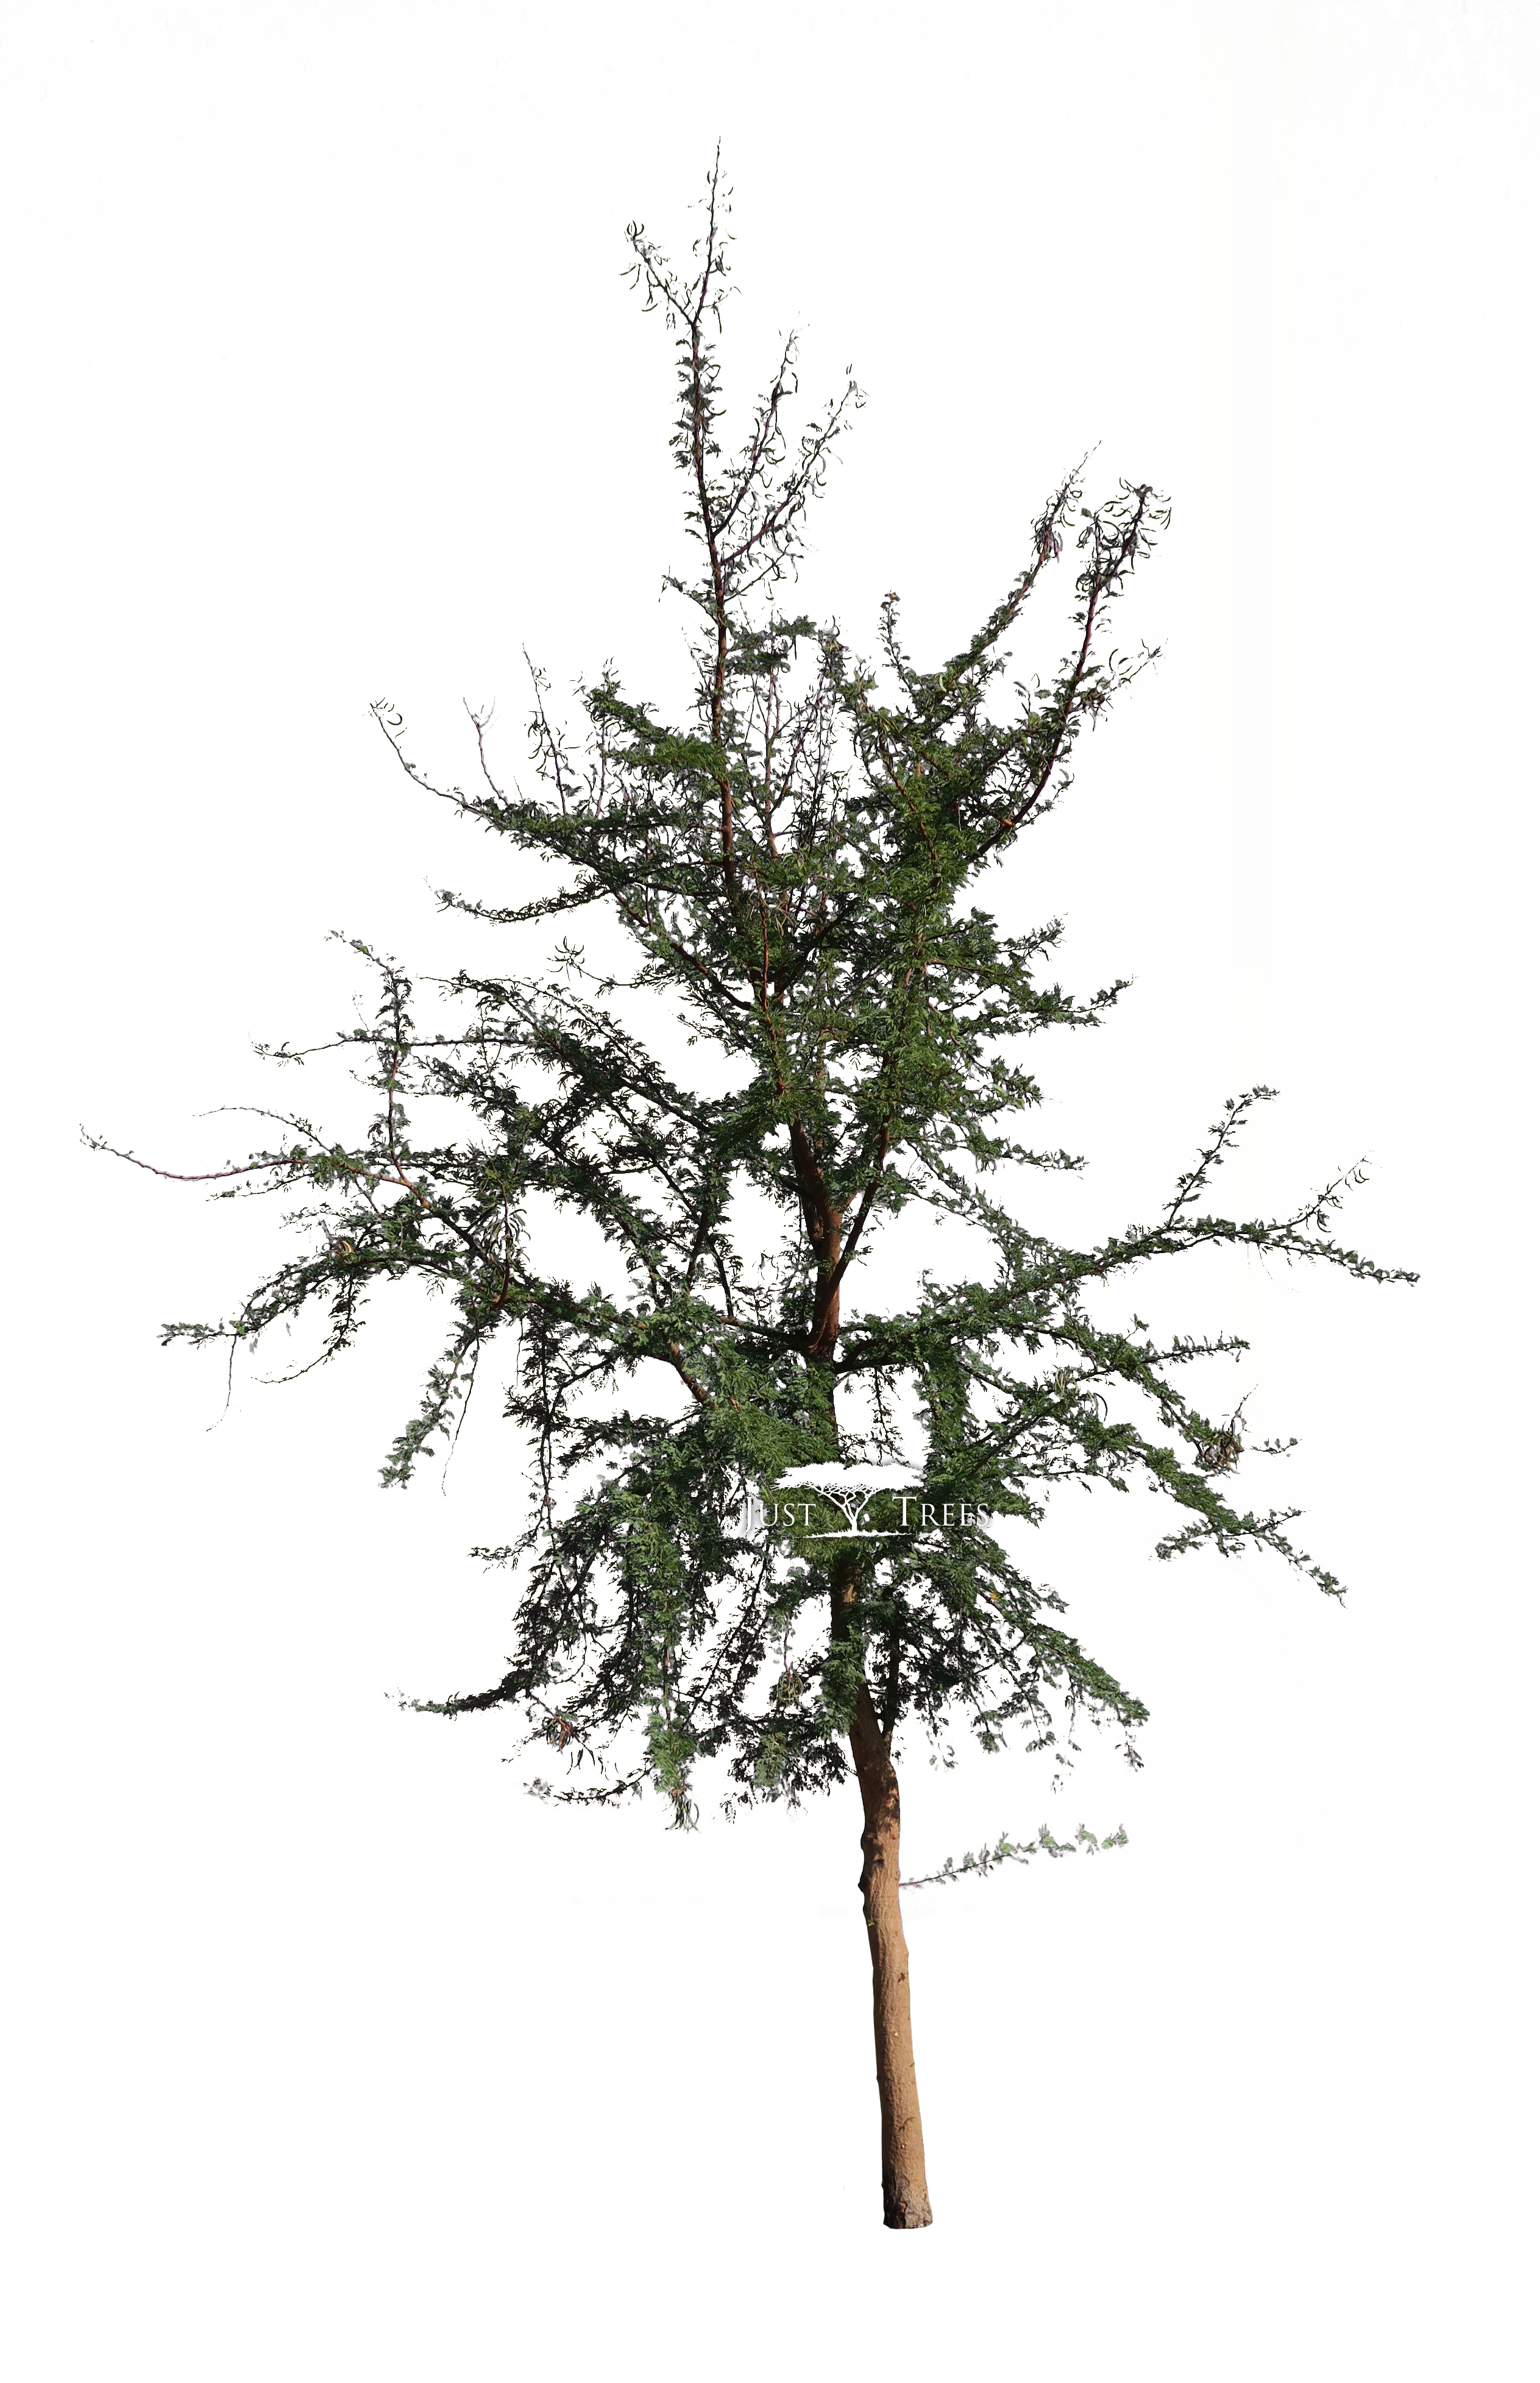 Acacia Karroo Common Name Sweet Thorn Pngs For Landscape